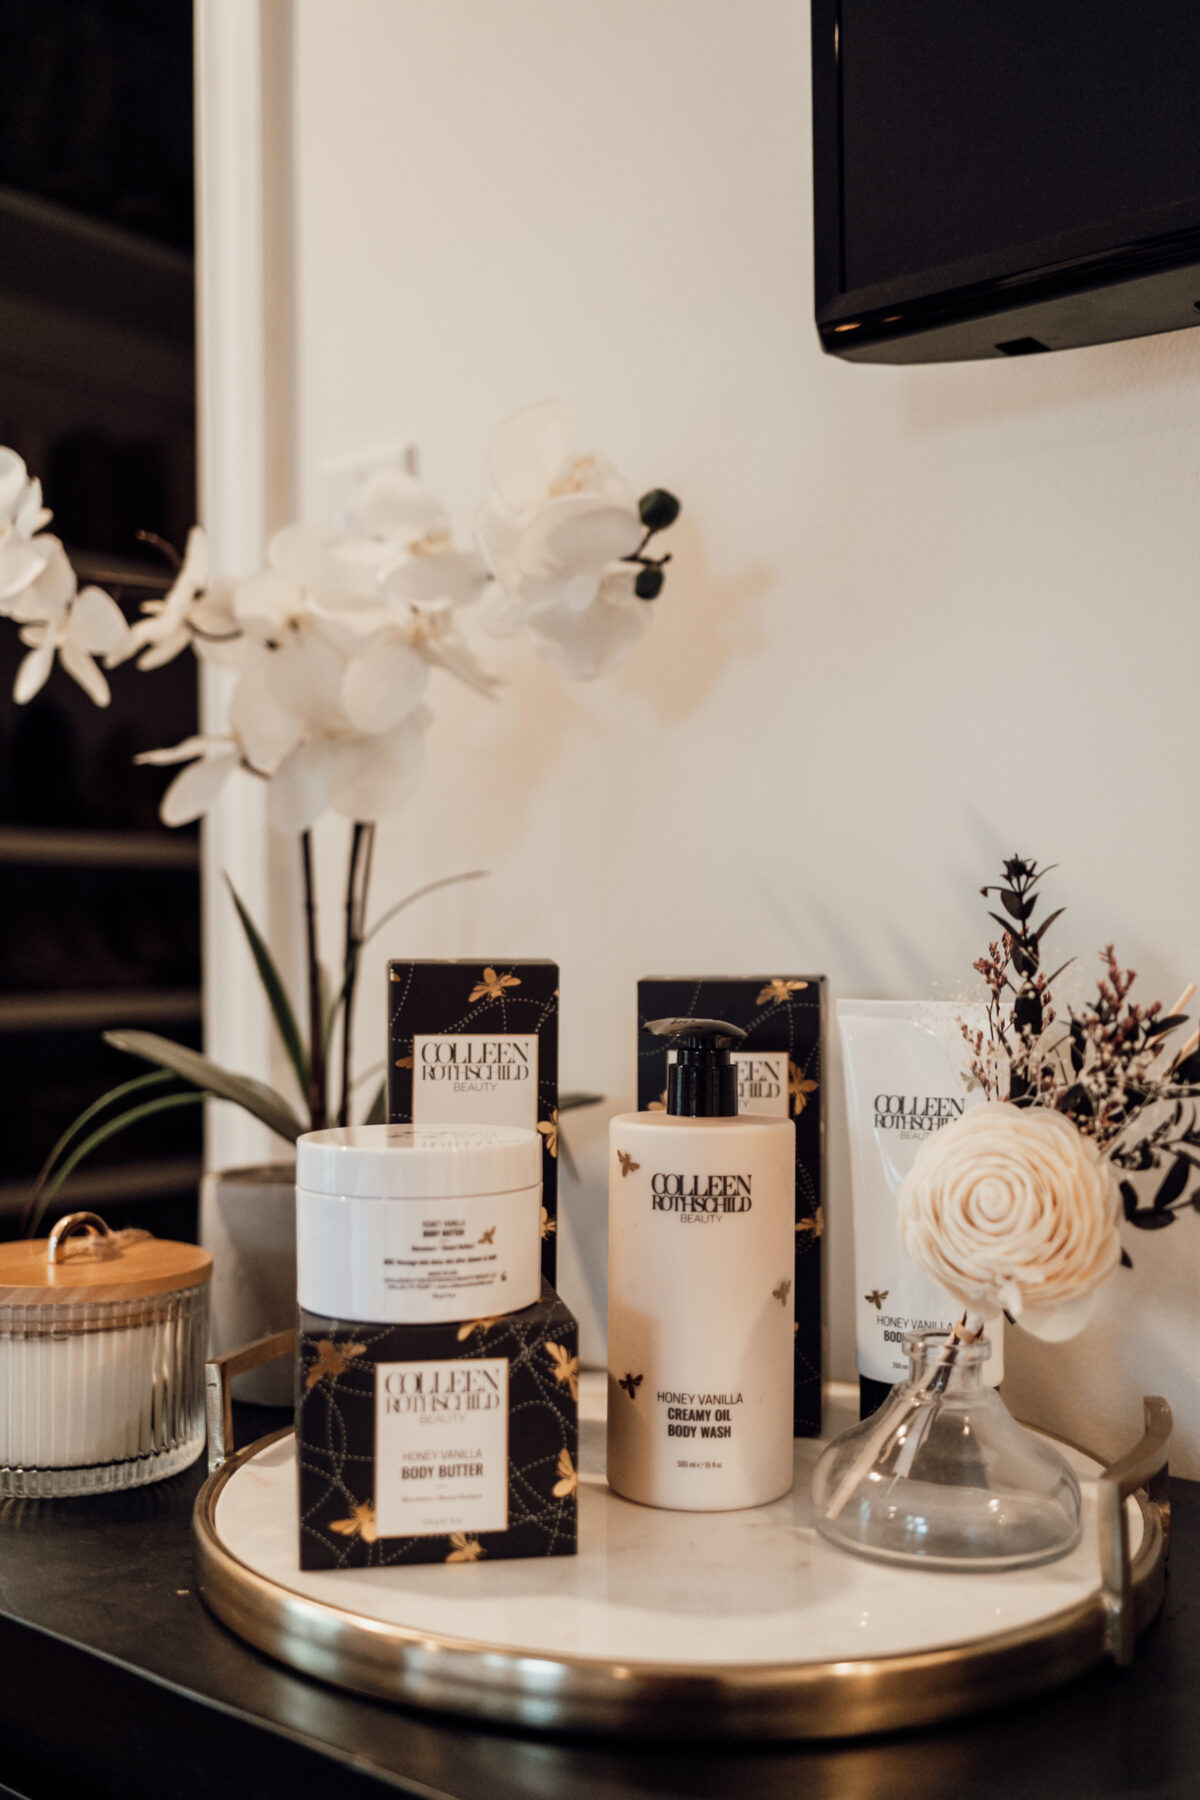 COLLEEN ROTHSCHILD BEAUTY products picture with flowers